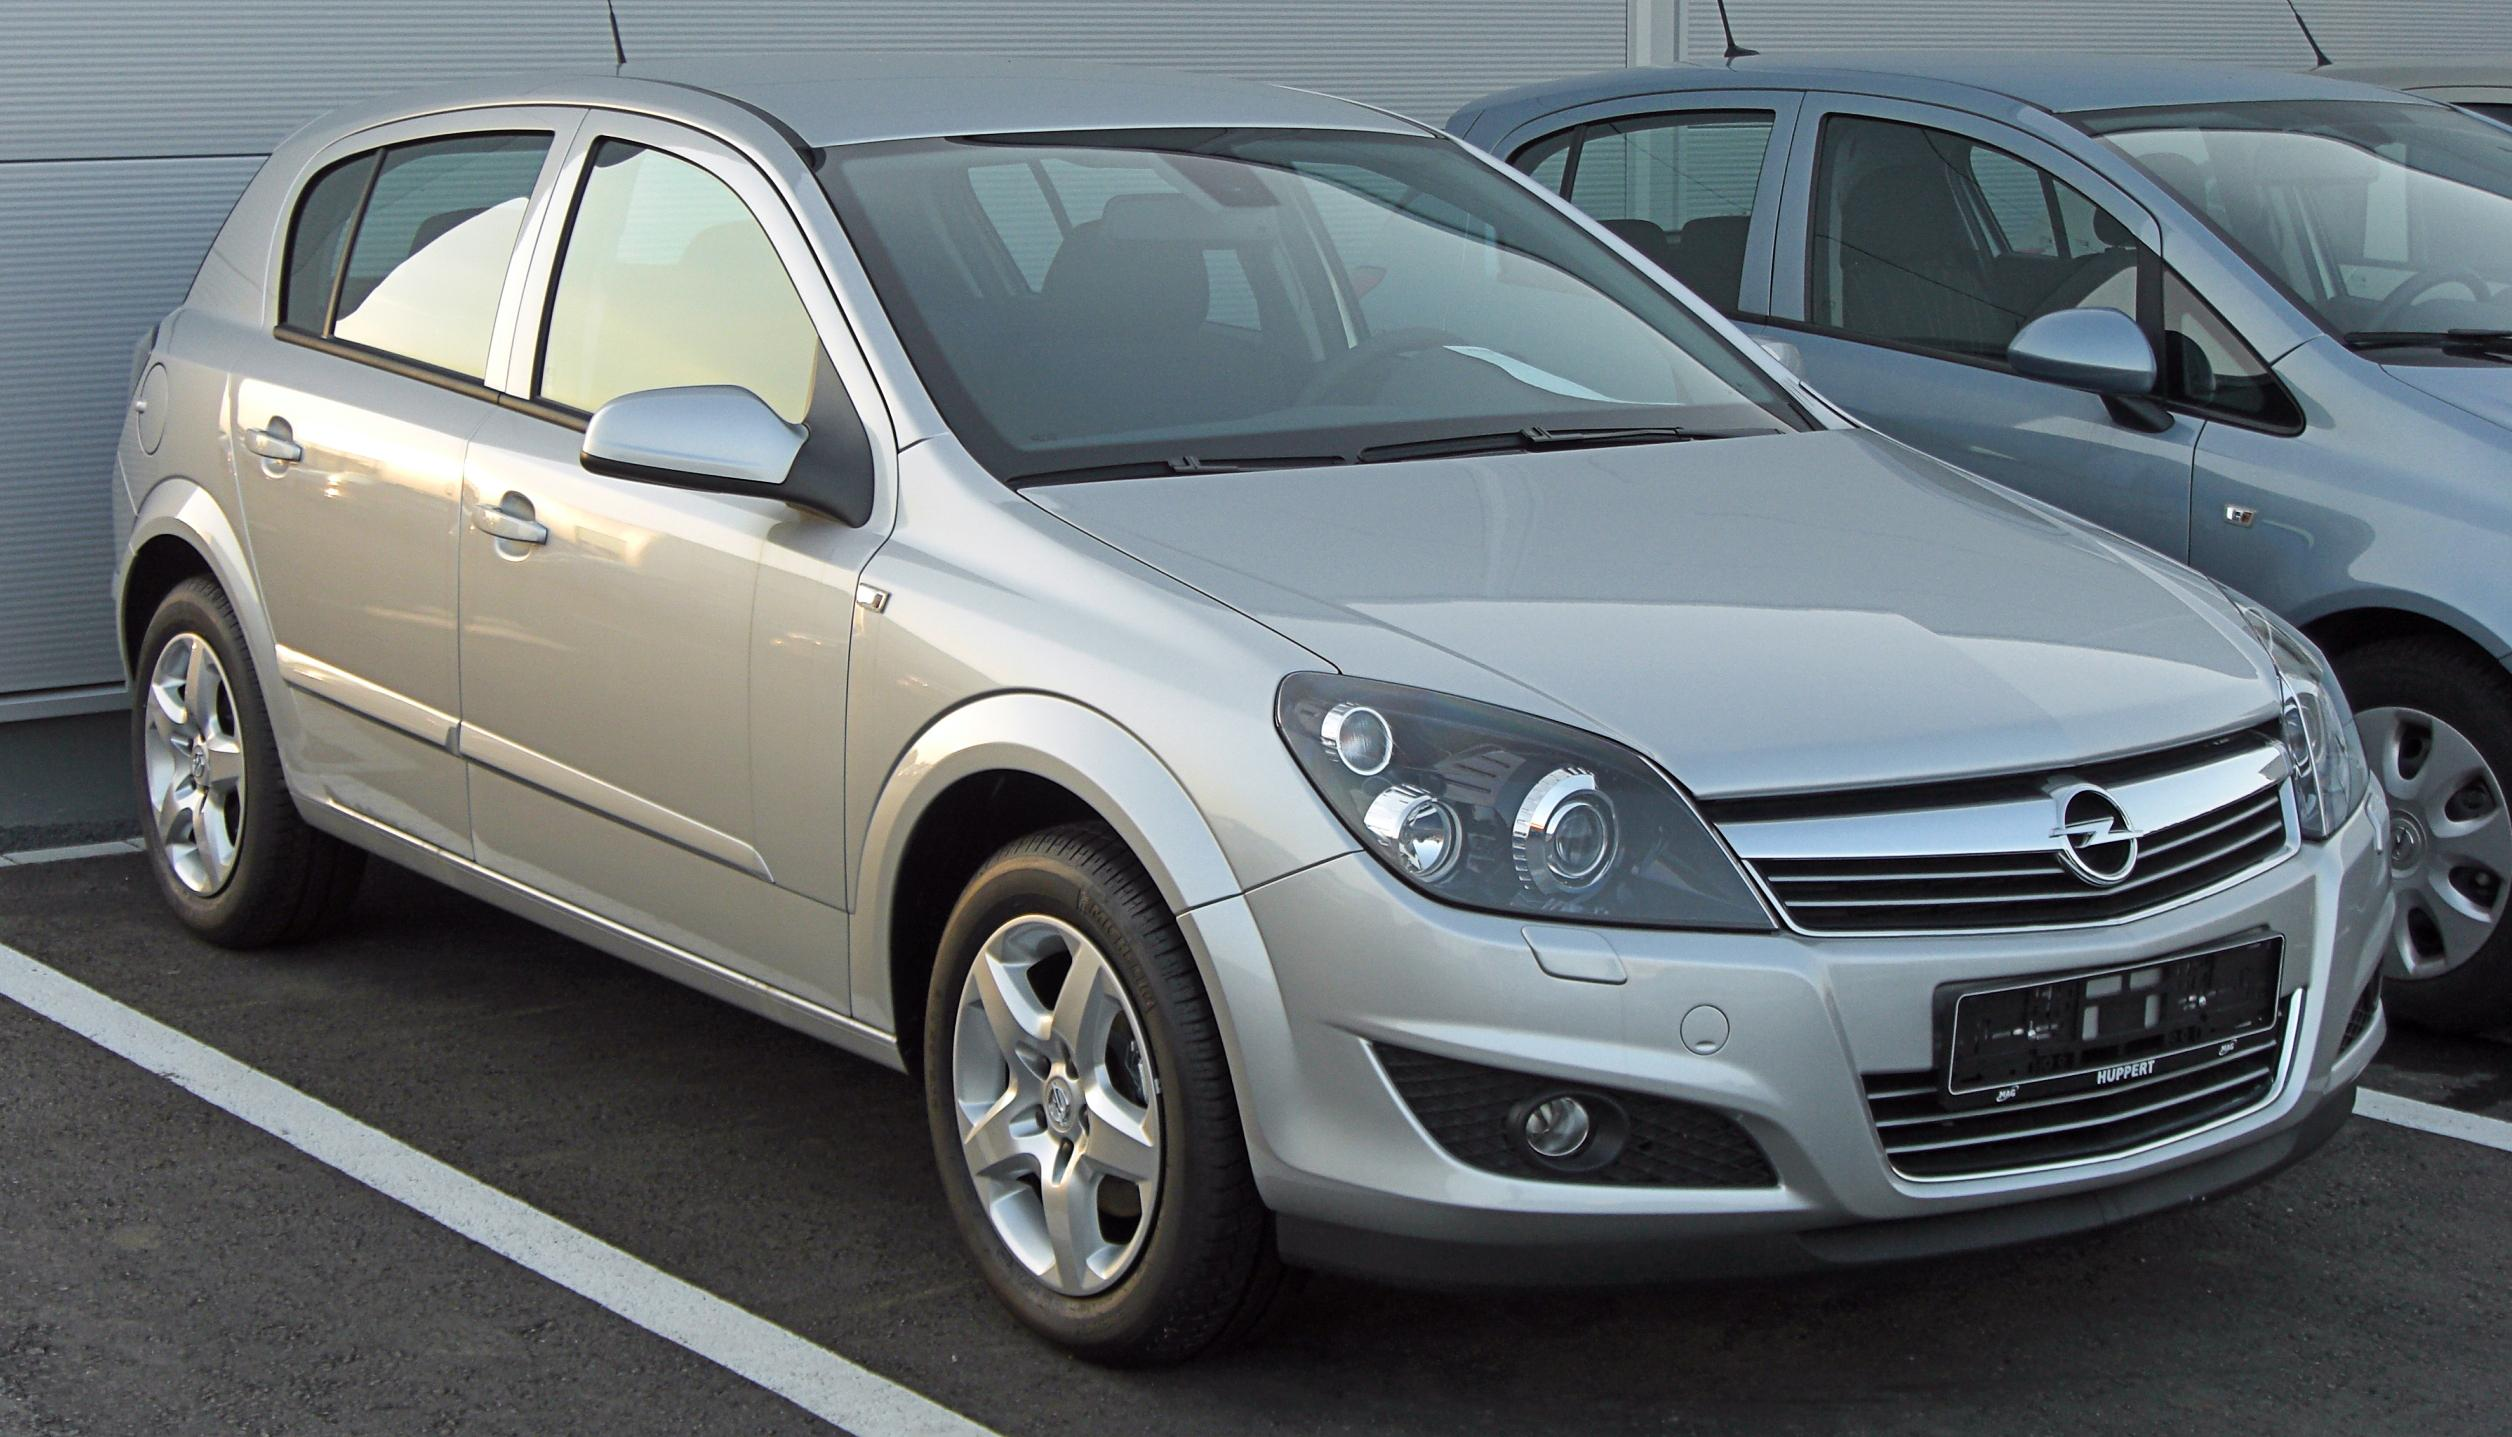 Cars chevrolet astra #4